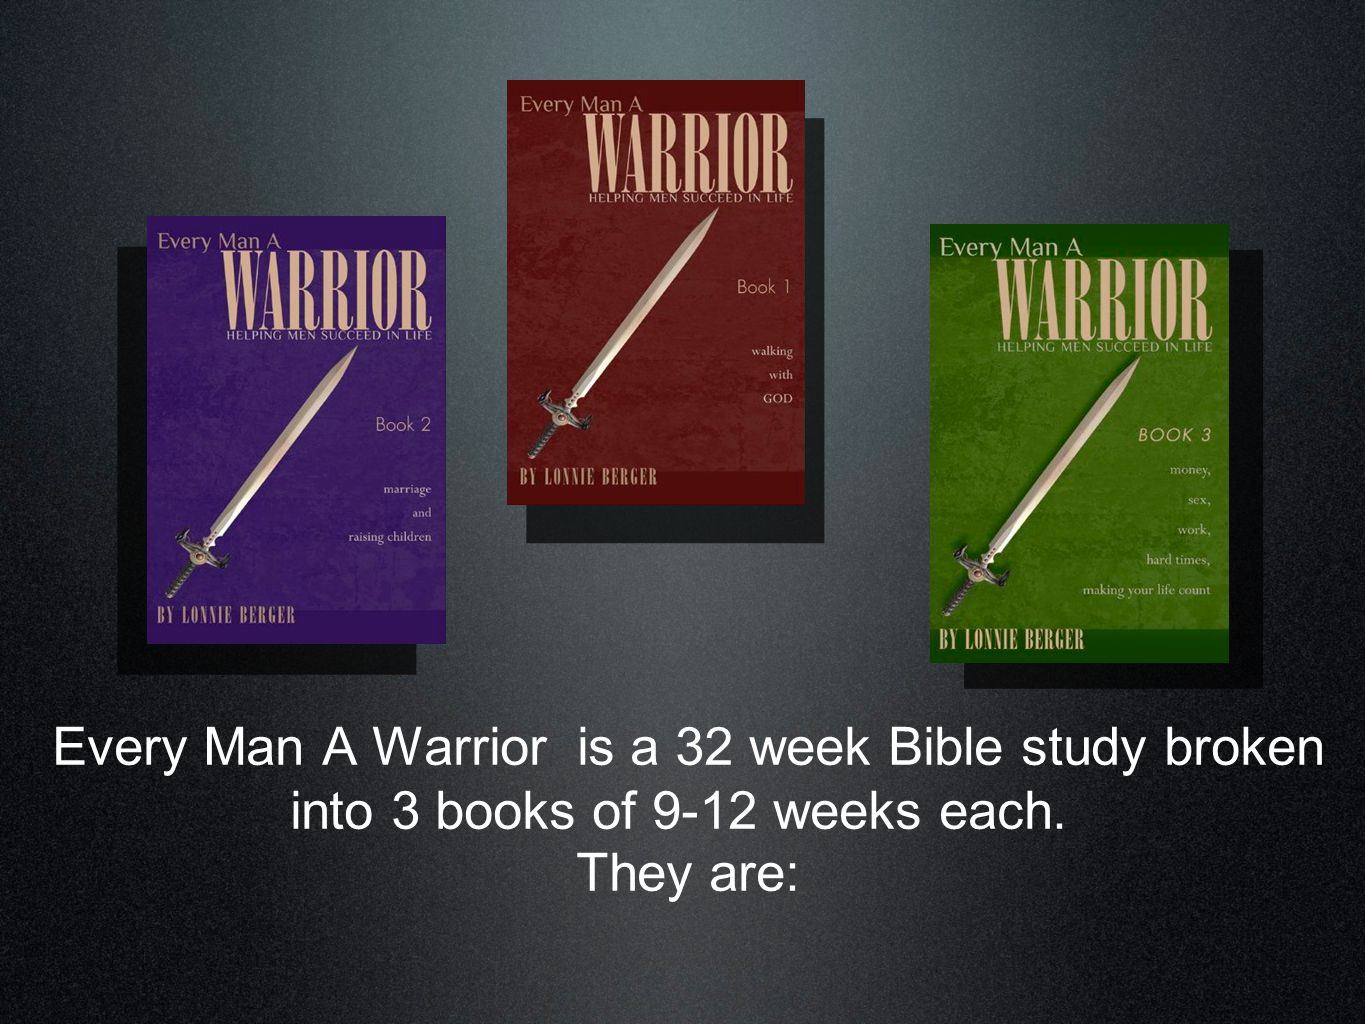 Walking With God The first nine lessons of Every Man A Warrior develop the essential skills of discipleship.